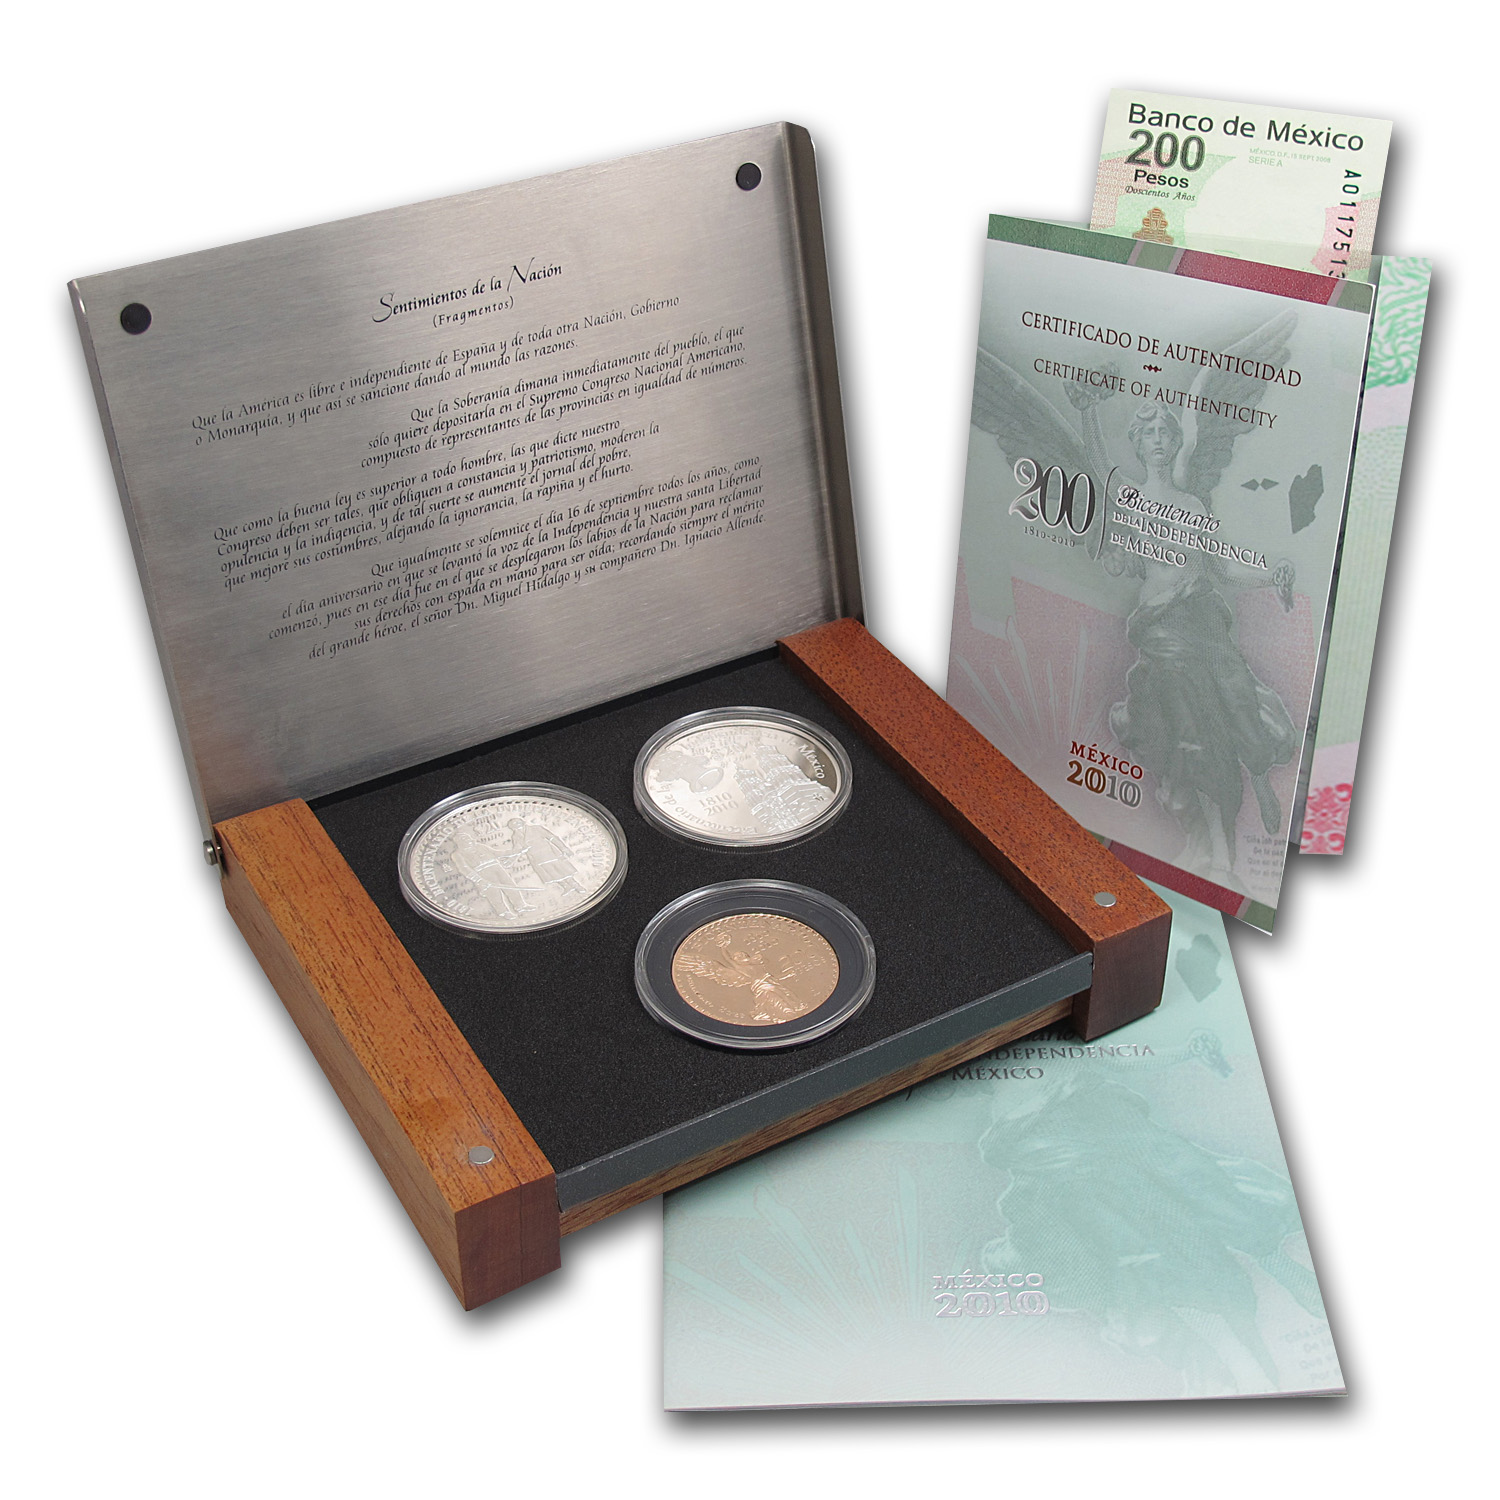 2010 3-Coin Mexican Prestige Proof Set (1.2057 oz AGW, 4 oz ASW)